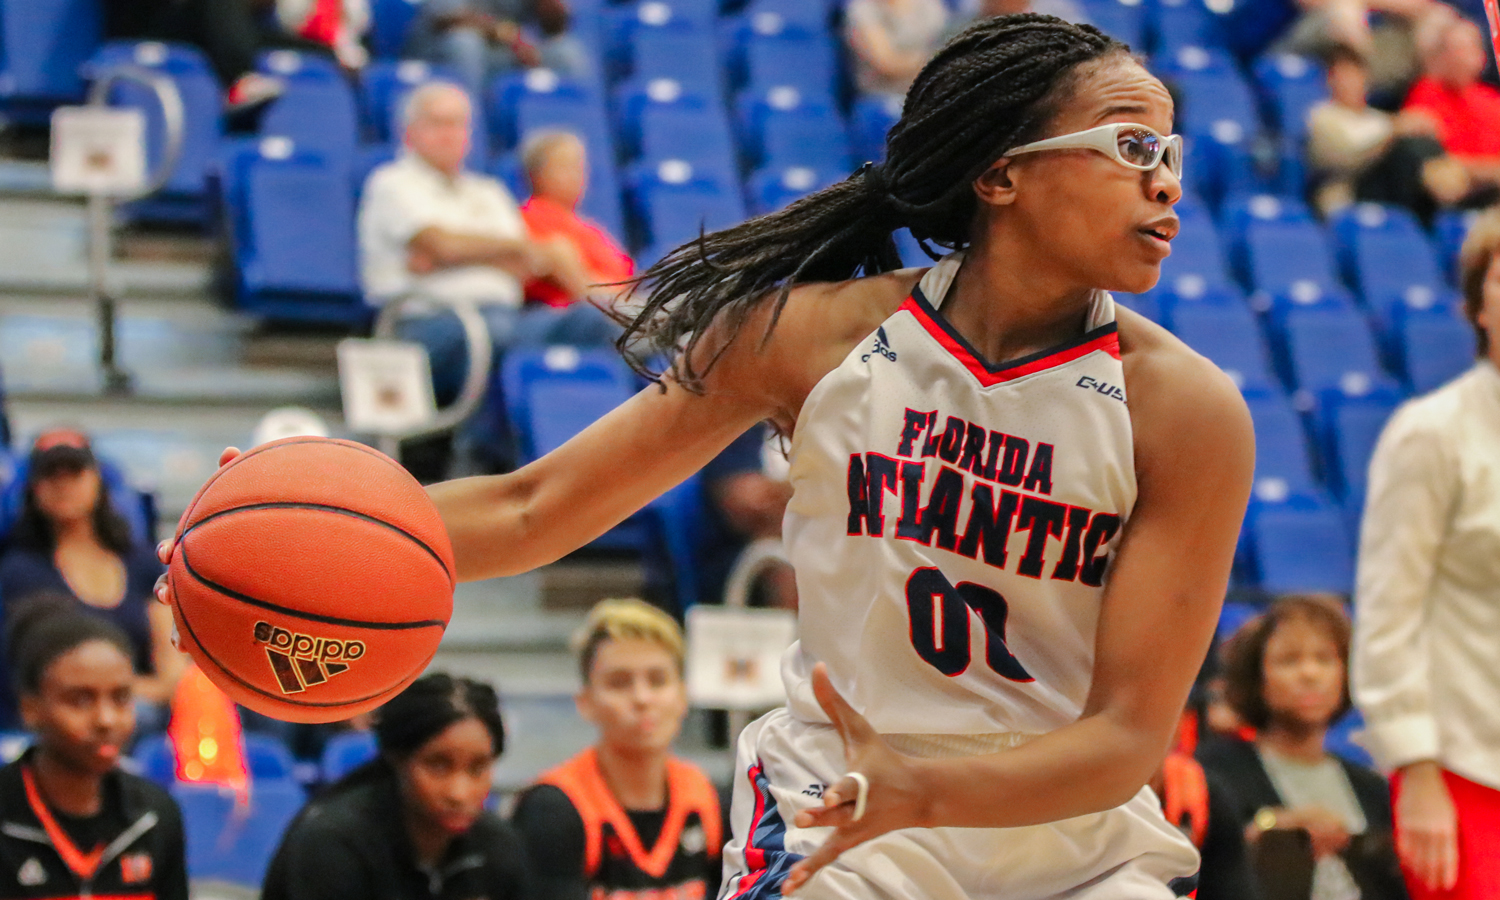 FAU redshirt junior guard Danneal Ford (00) looks up the court to find a pass to her players. FAU went on to lose 66-55 against Mercer on Nov 17, 2017. Lauren Sopourn   Contributing Writer